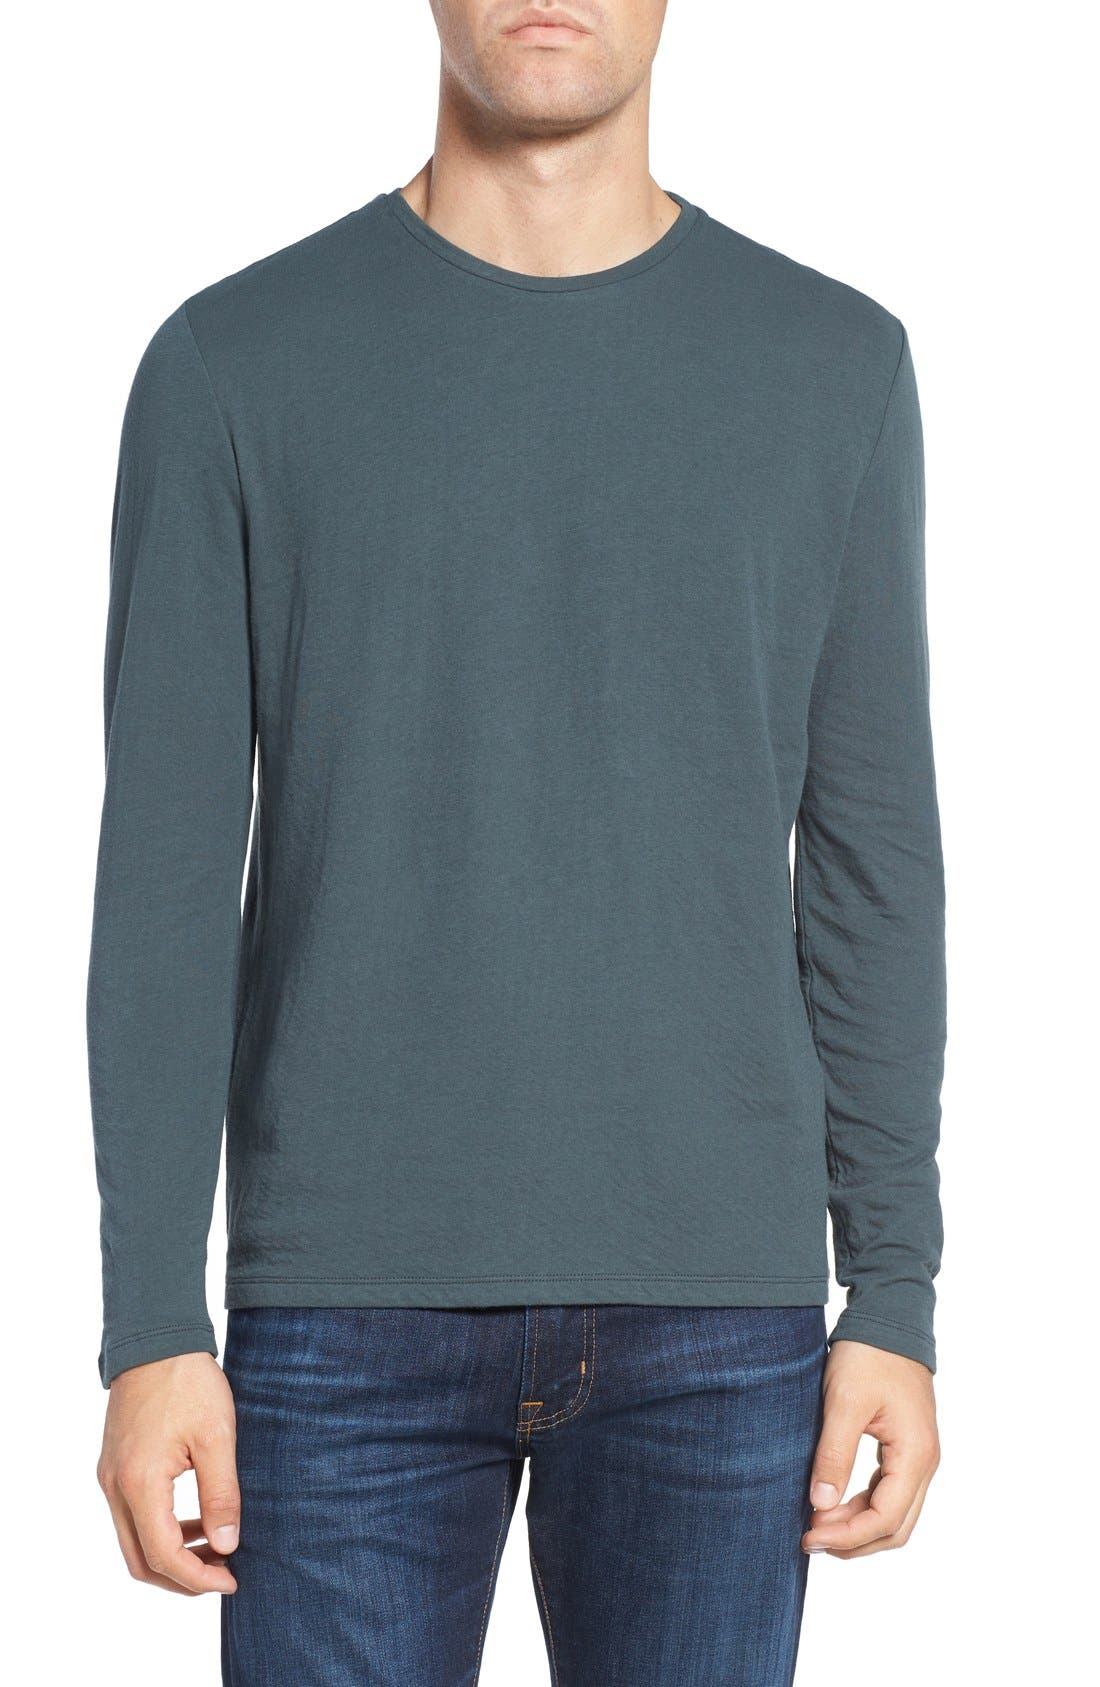 Alternate Image 1 Selected - Zachary Prell Long Sleeve Crewneck T-Shirt